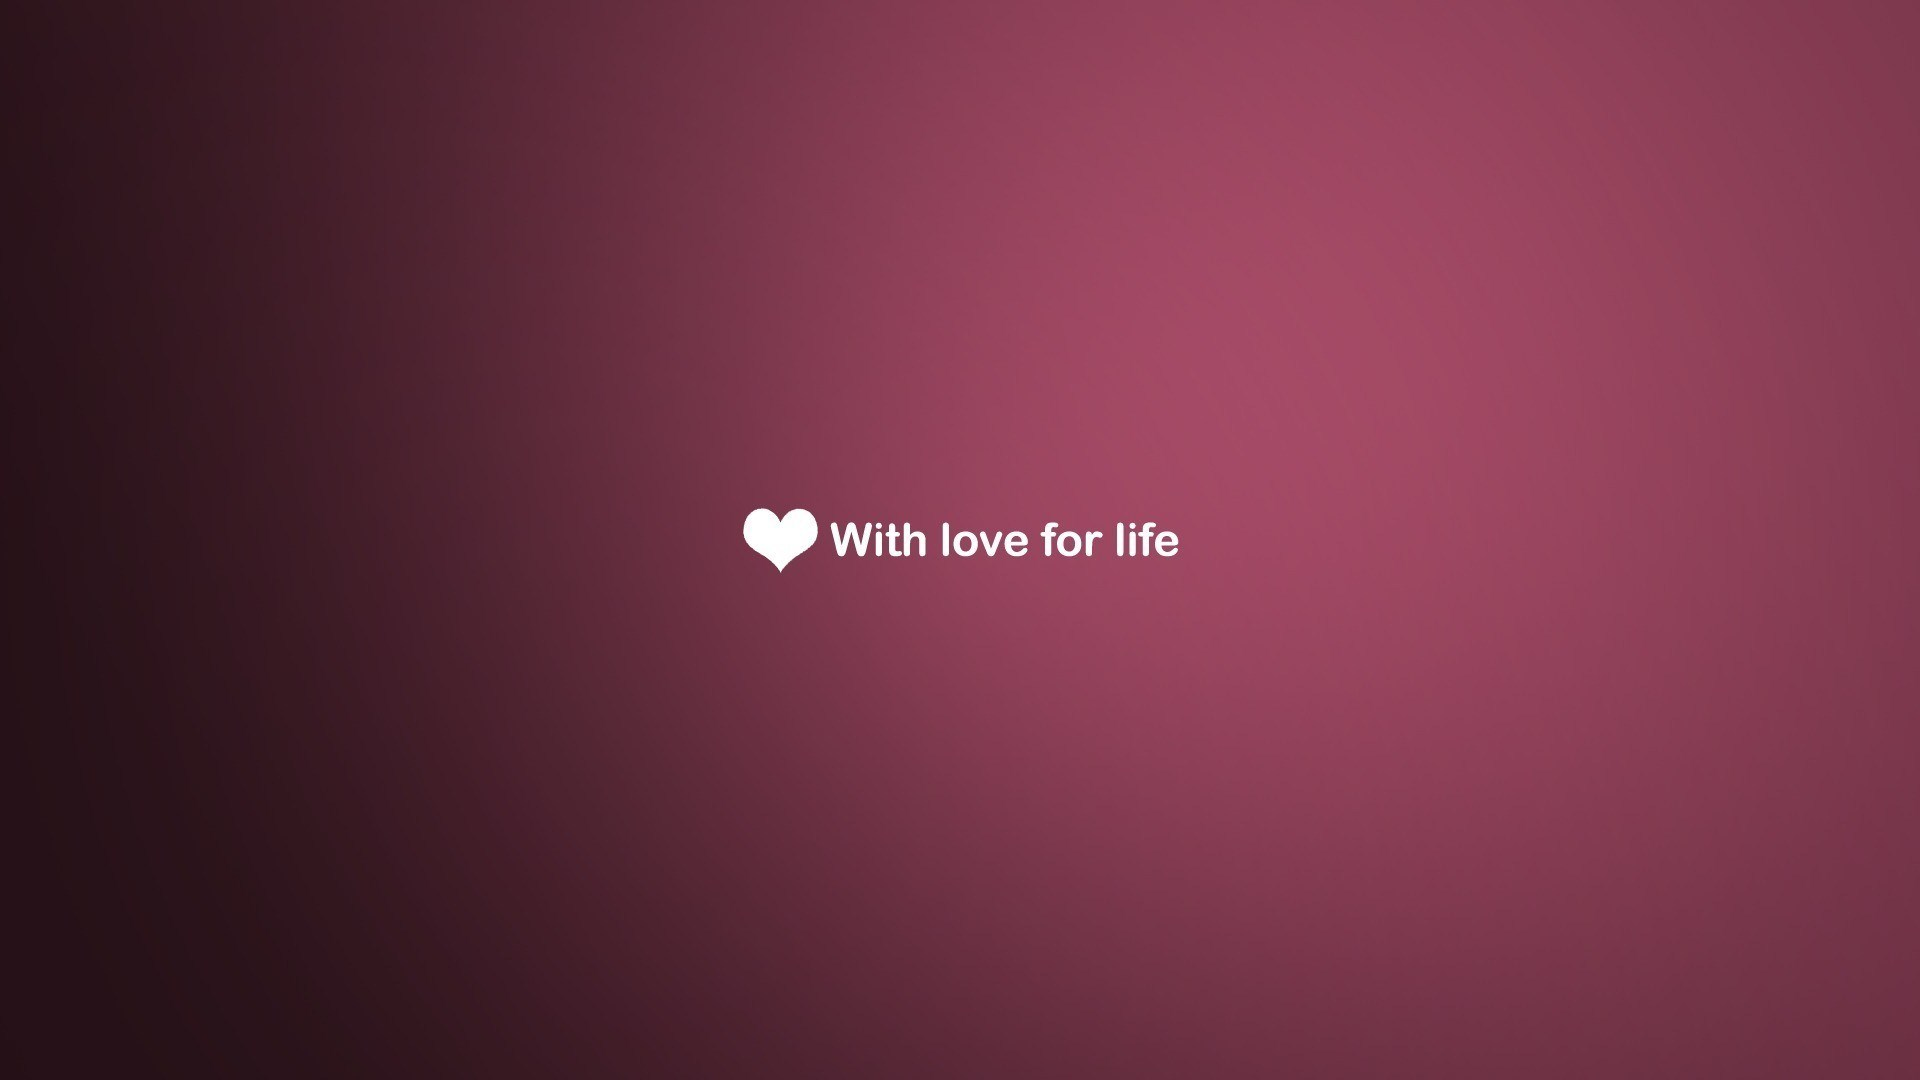 love life - wallpaper, high definition, high quality, widescreen